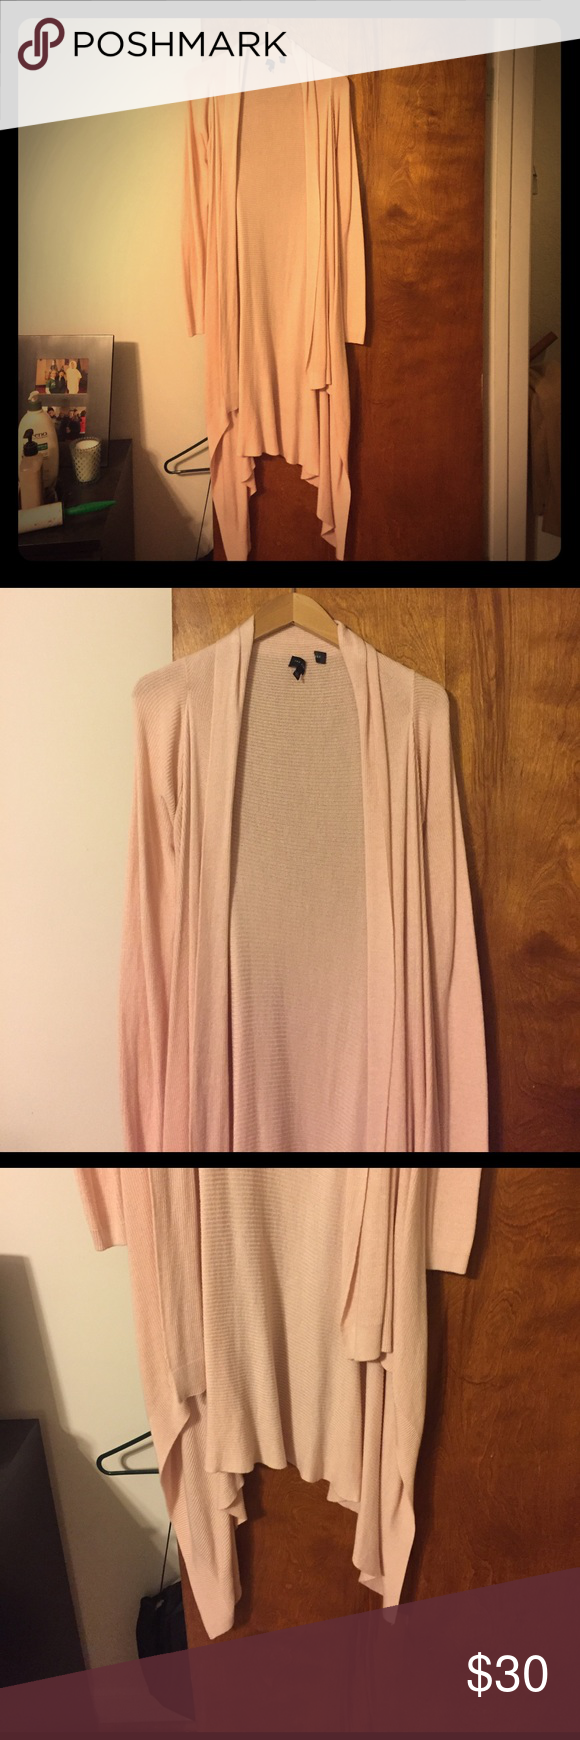 Limited long sweater   Light pink color, Long sweaters and ...